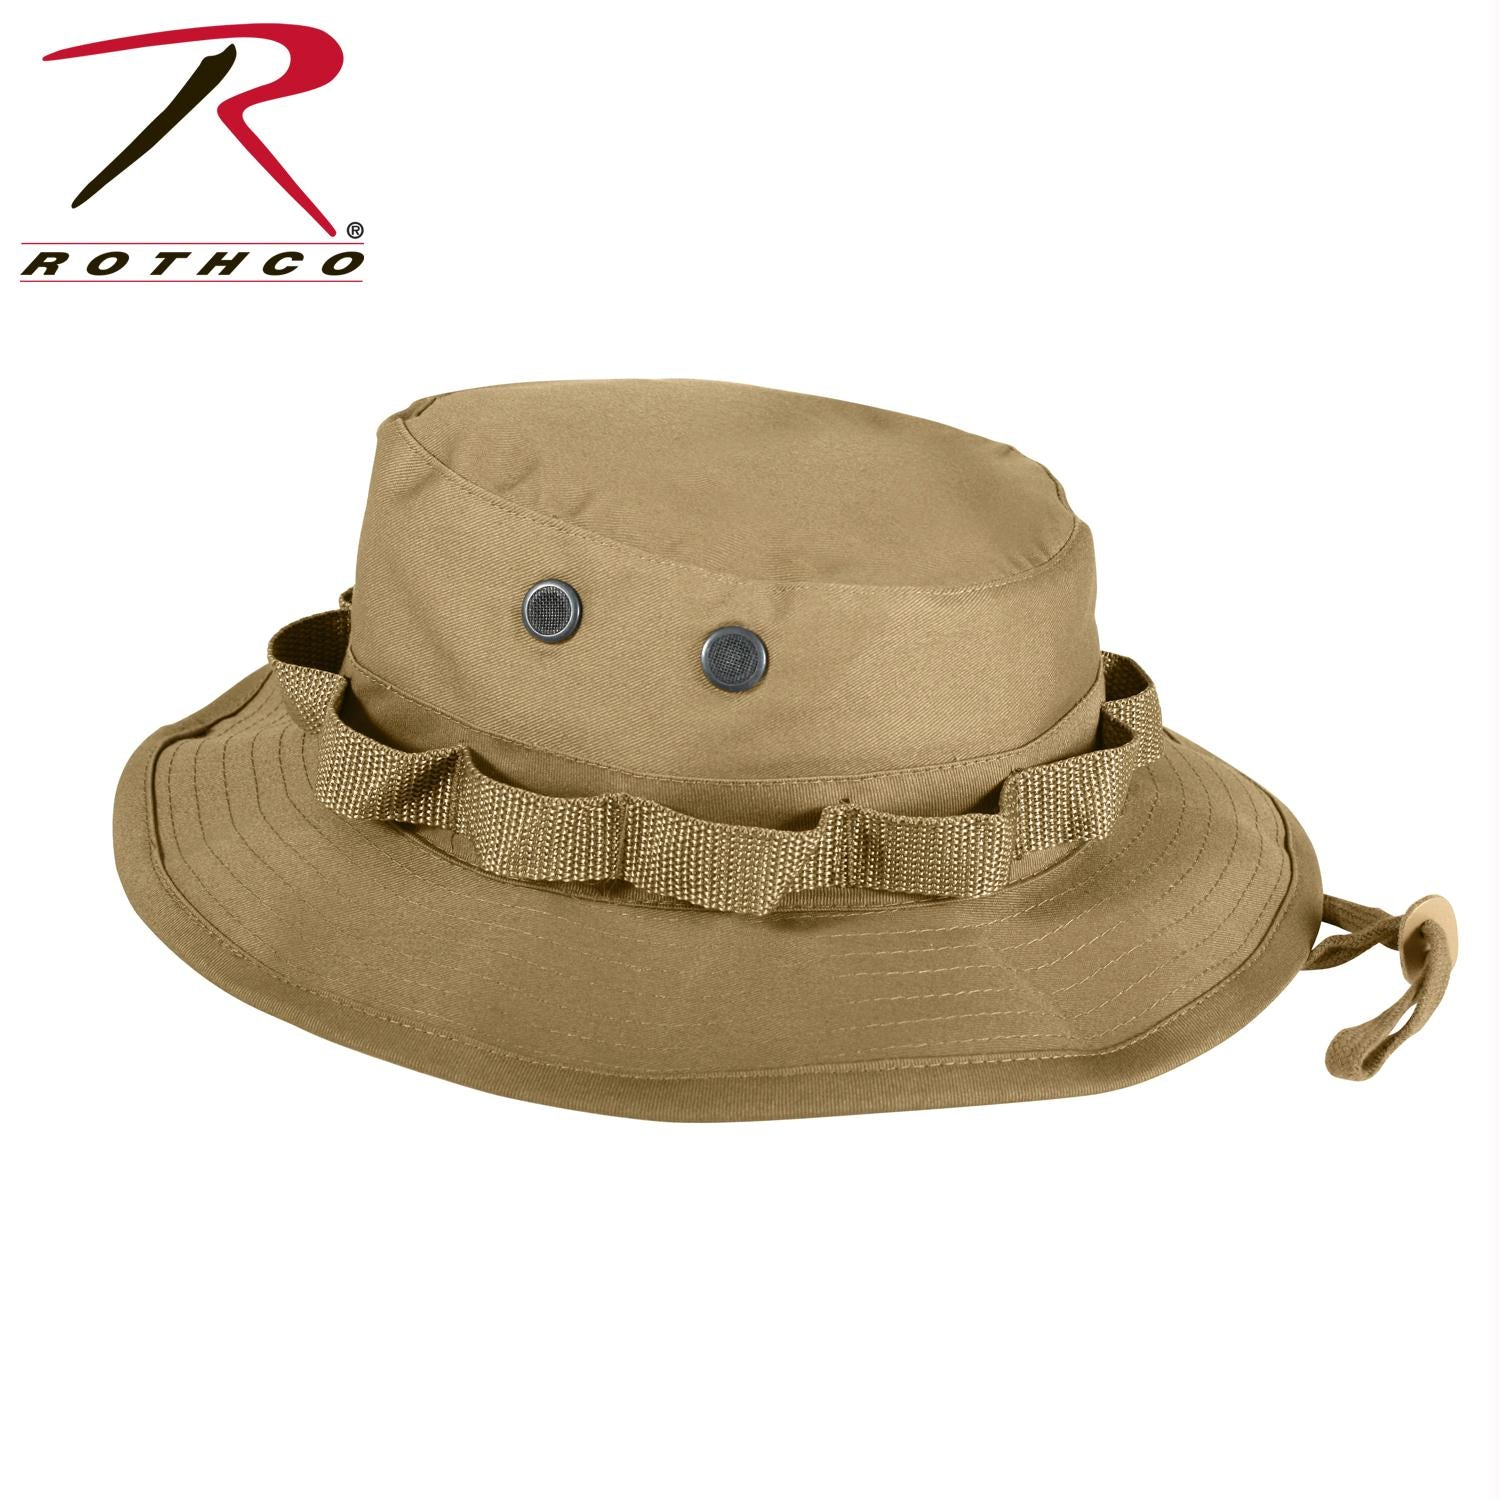 Rothco Boonie Hat - Coyote Brown / 7 1/4